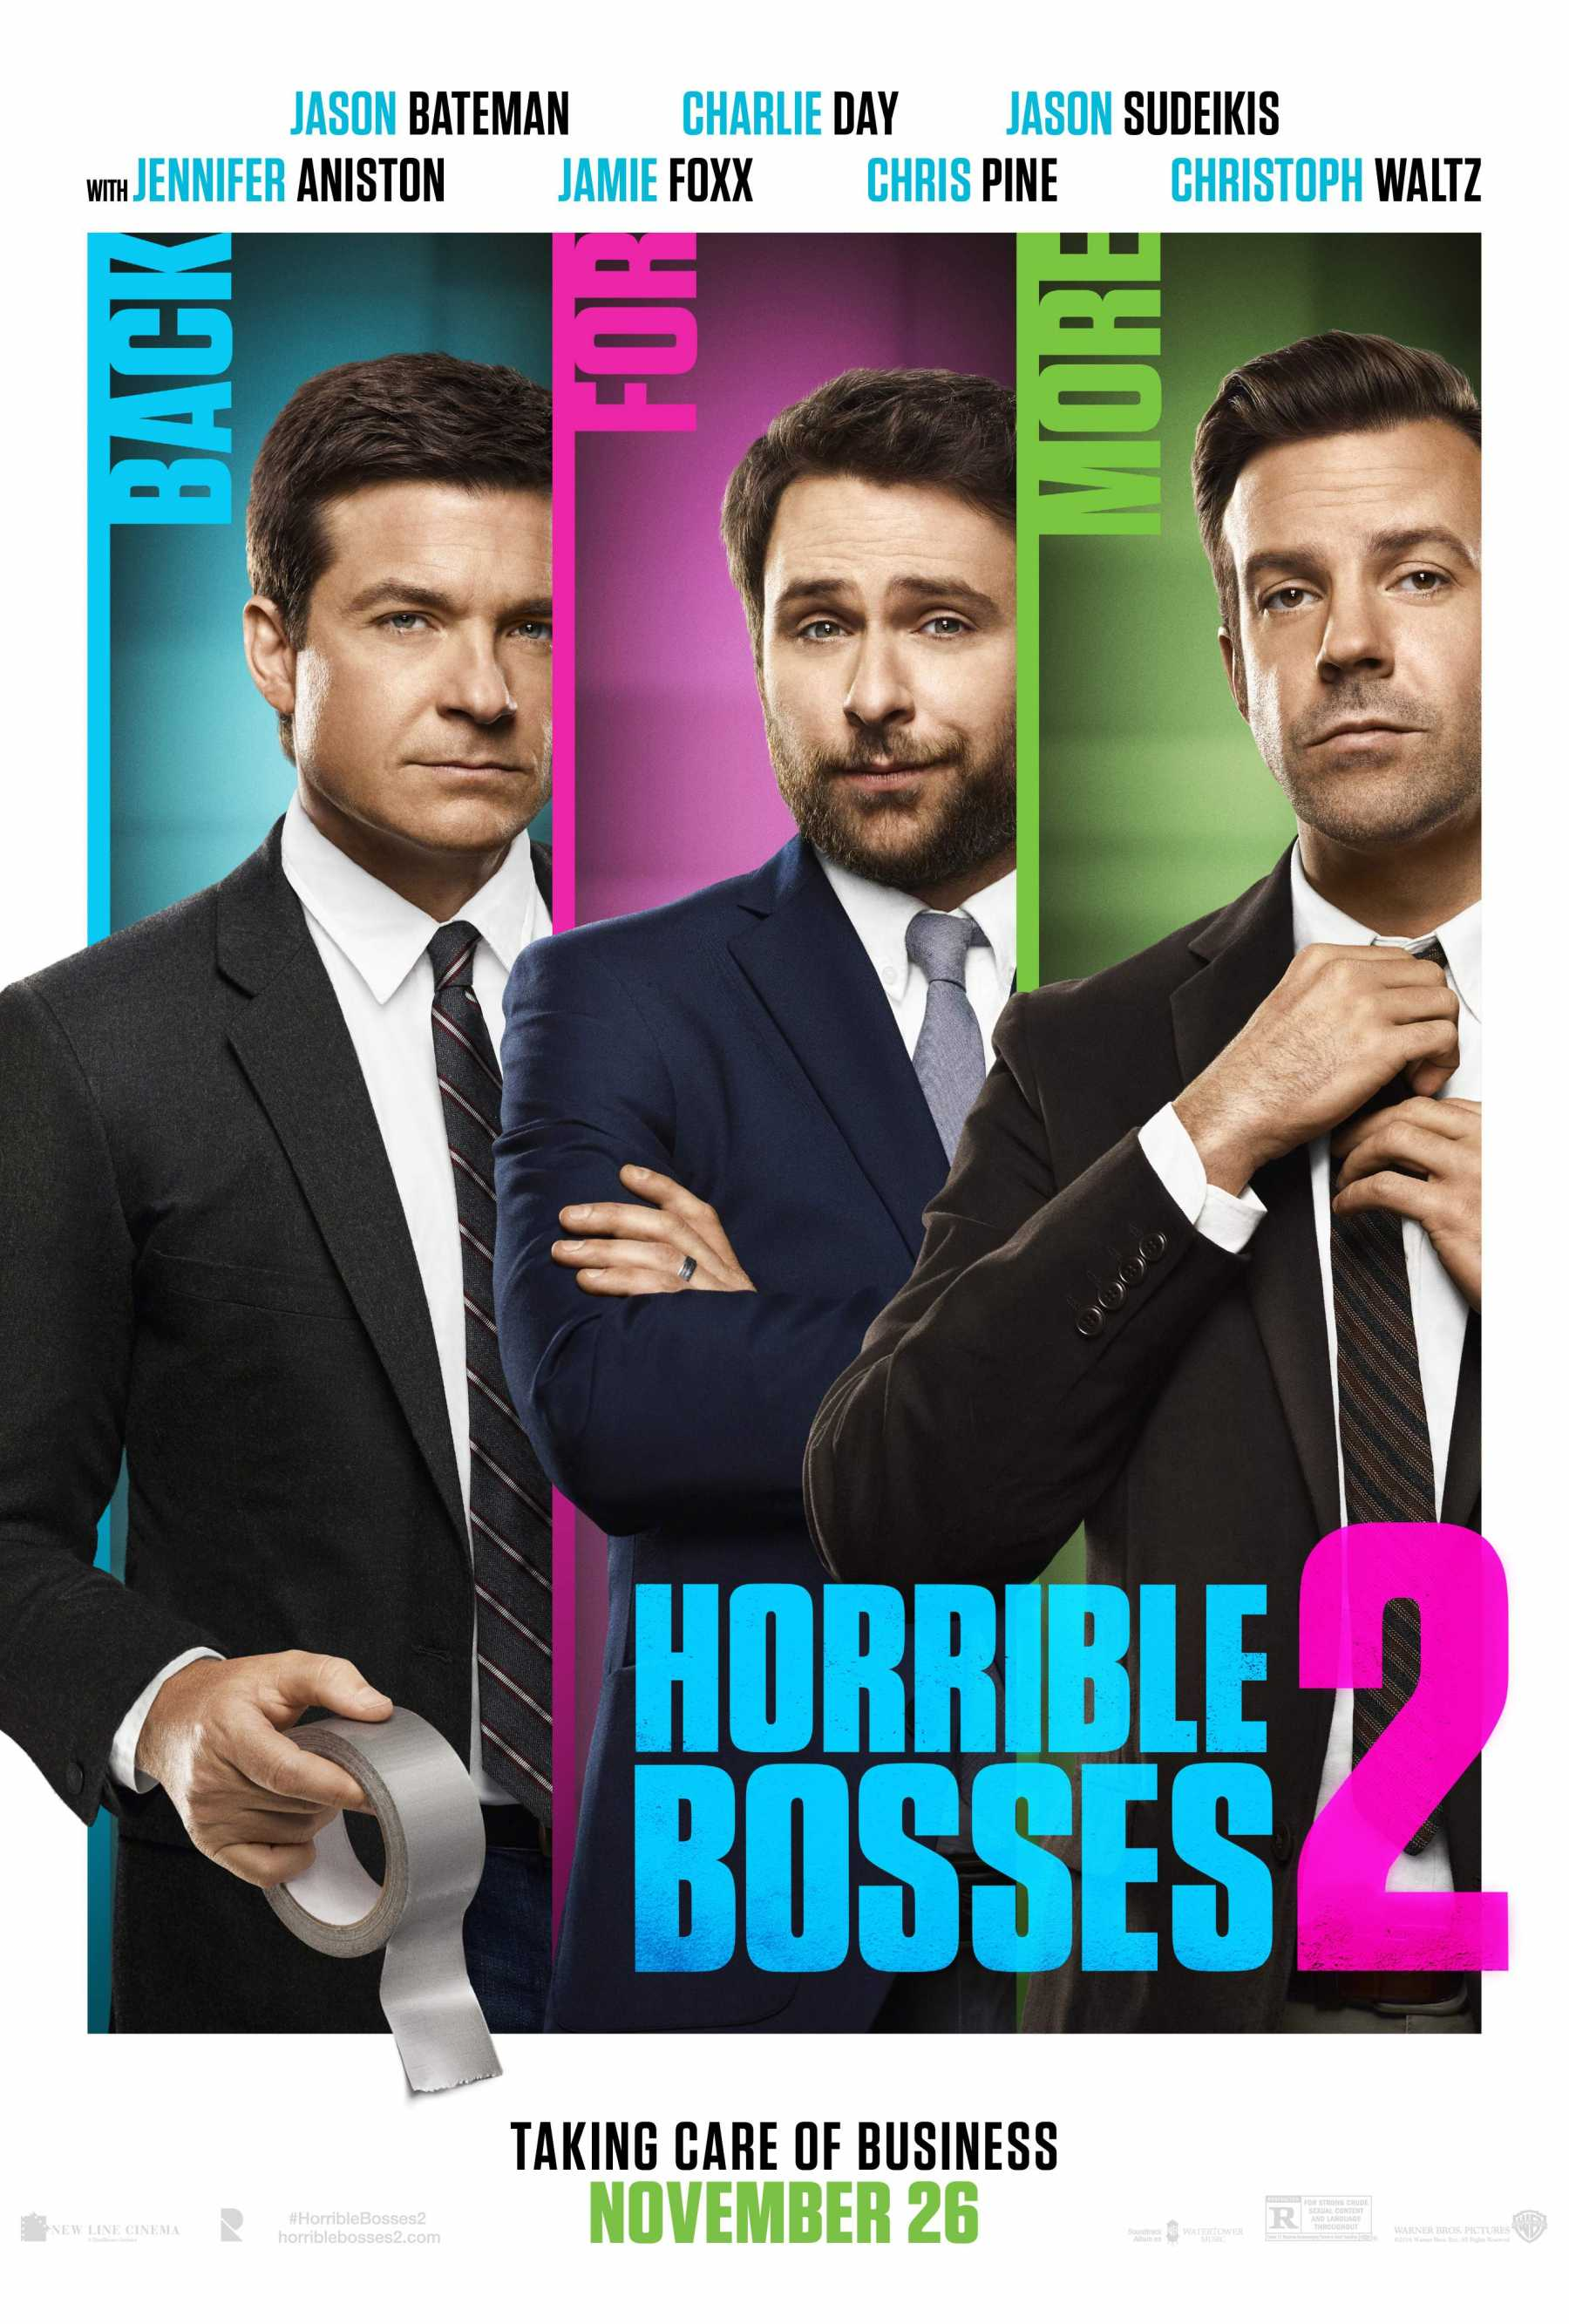 The Hysterical Trailer For 'Horrible Bosses 2' Has Arrived | horrible bosses 2